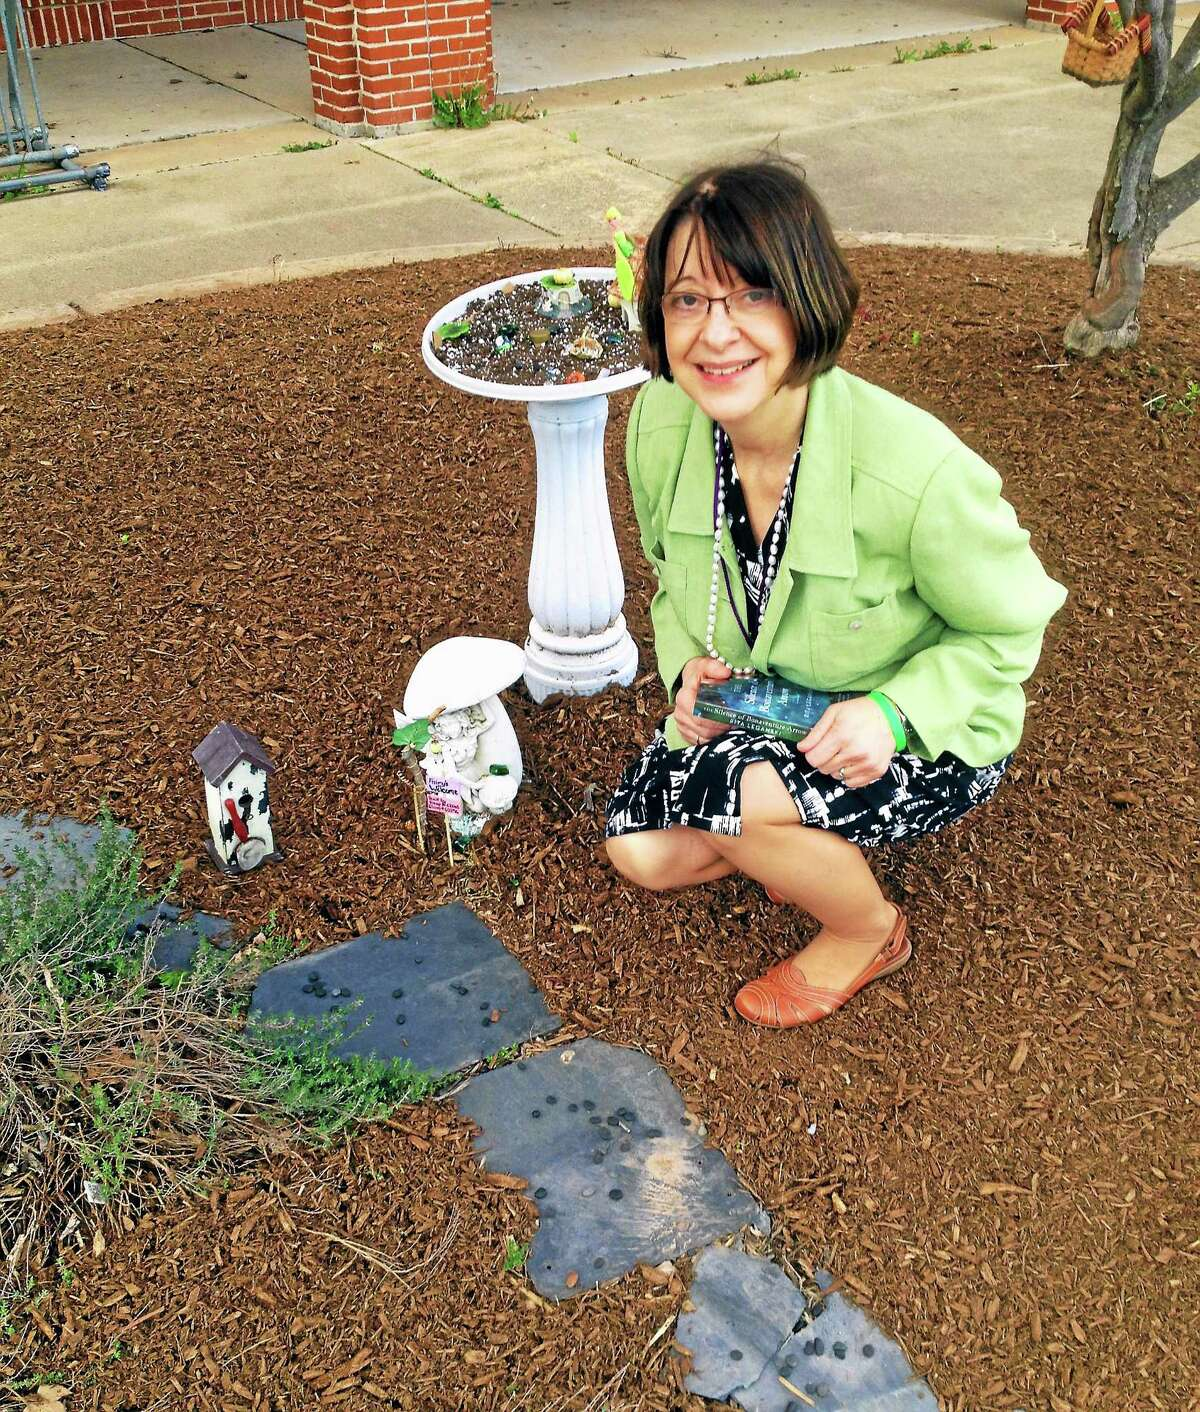 In this 2014 photograph, Cromwell Belden Library Director Eileen Branciforte shows off a whimsical fairy garden created by a patron of the children's department.